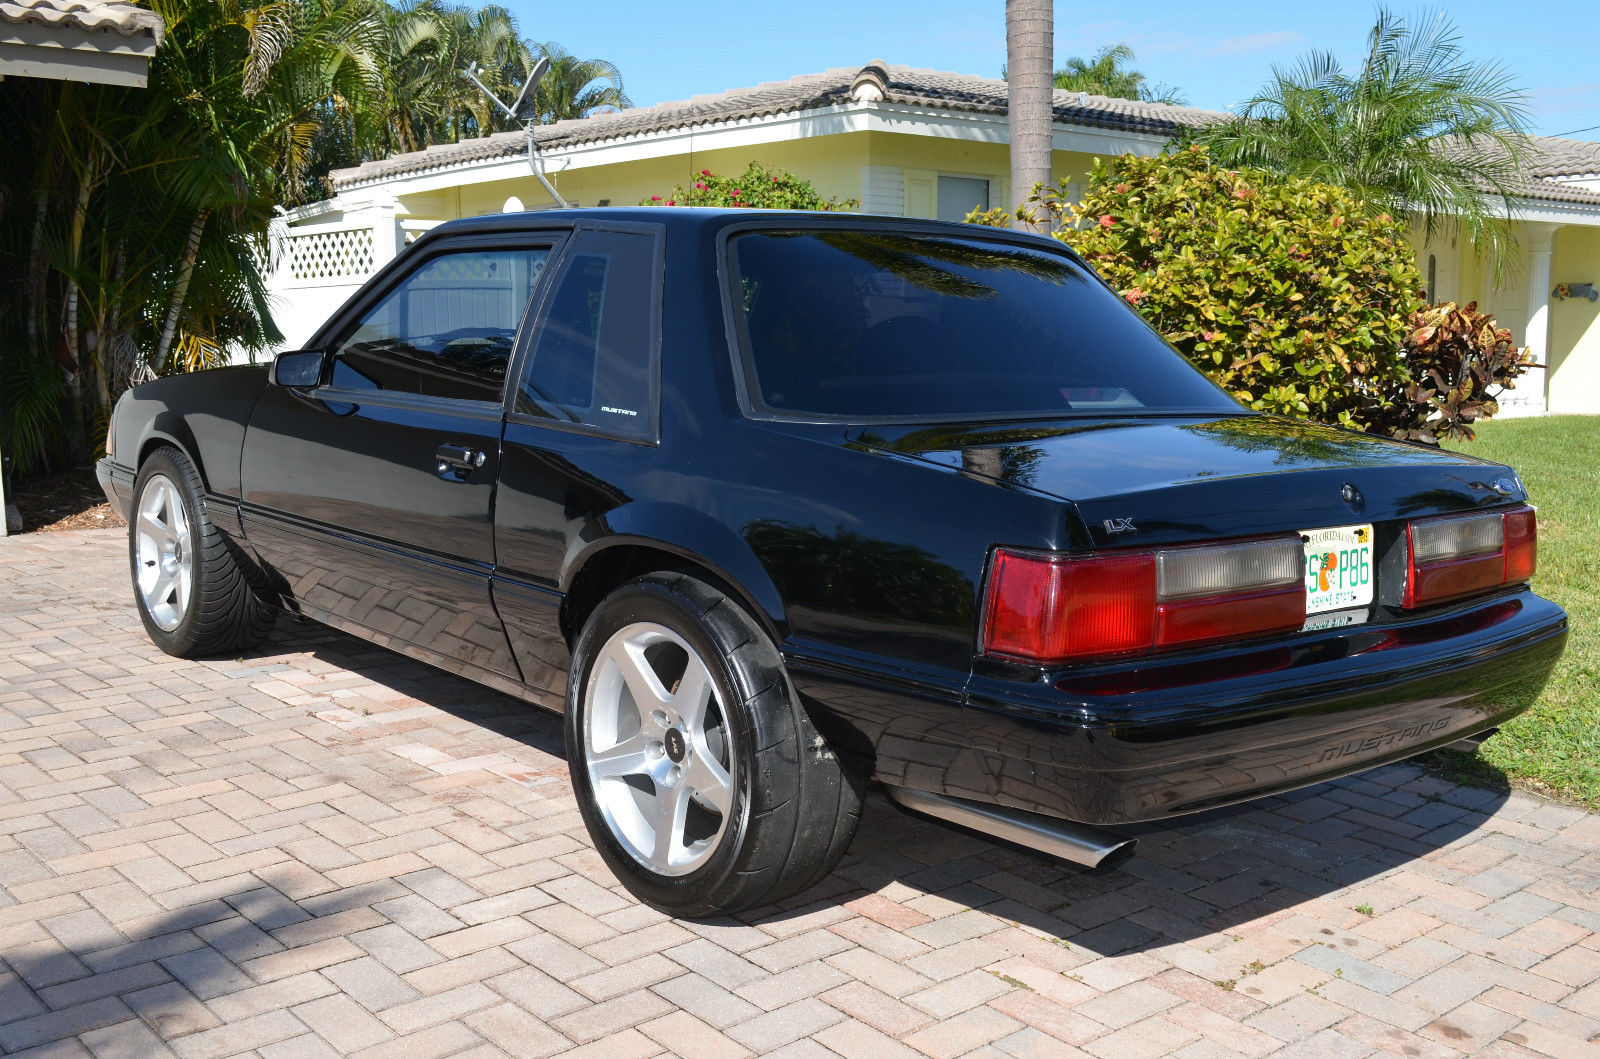 1993 ford mustang lx fox body coupe 01 cobra swap supercharged engine. Black Bedroom Furniture Sets. Home Design Ideas